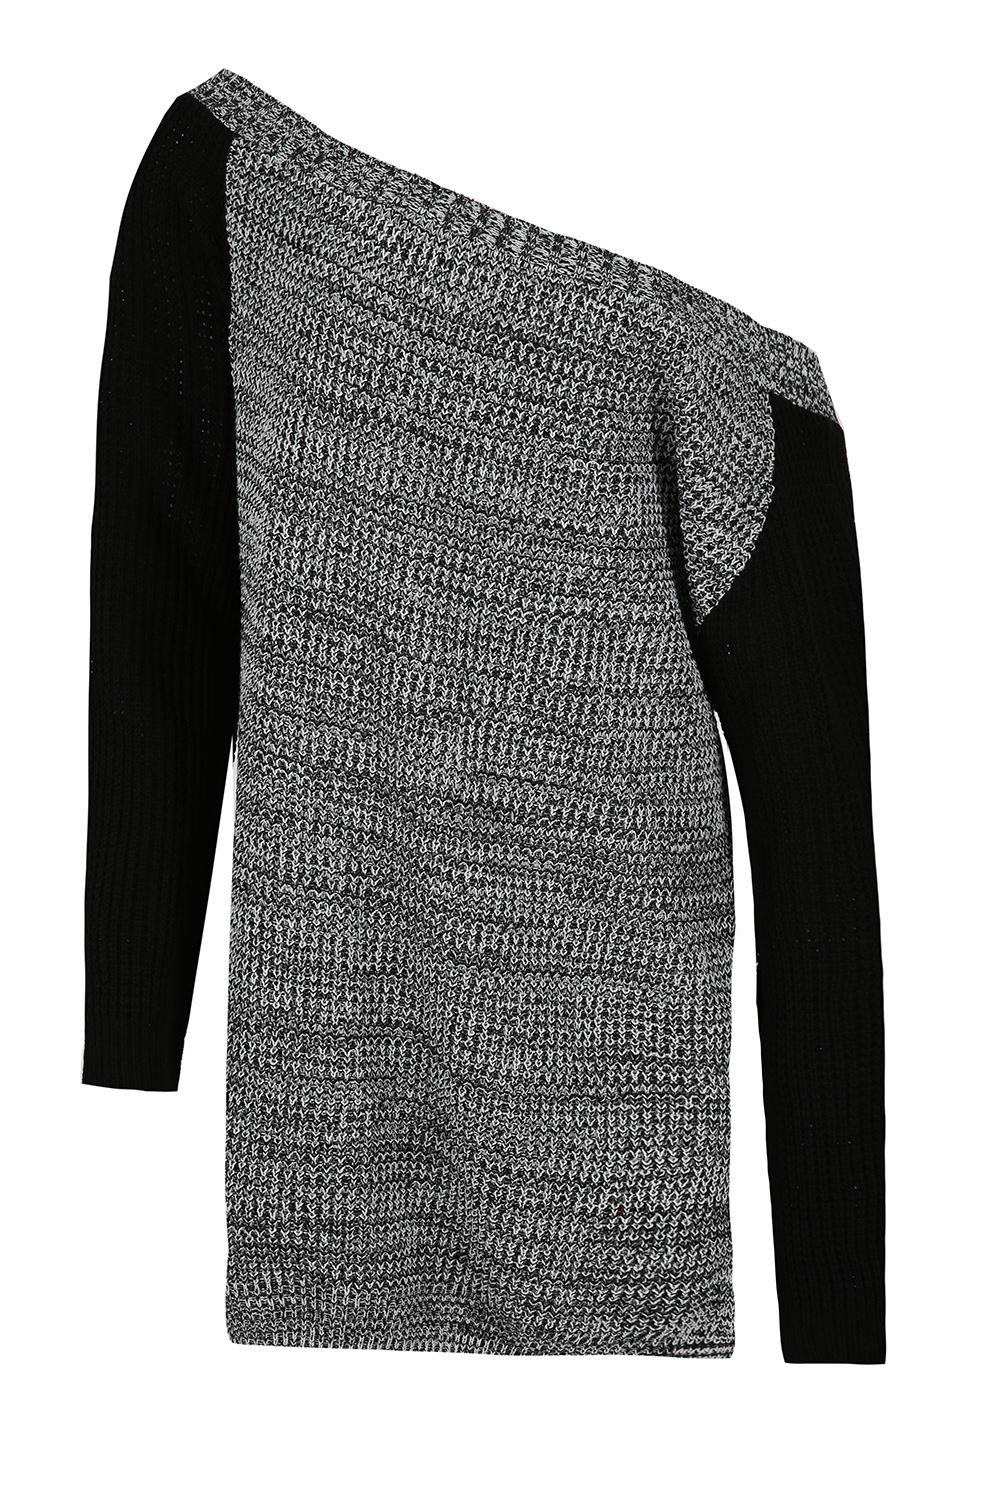 Womens-Oversized-Jumper-Ladies-Dress-Long-Sleeve-Chunky-Knitted-Long-Sweater-Top thumbnail 34